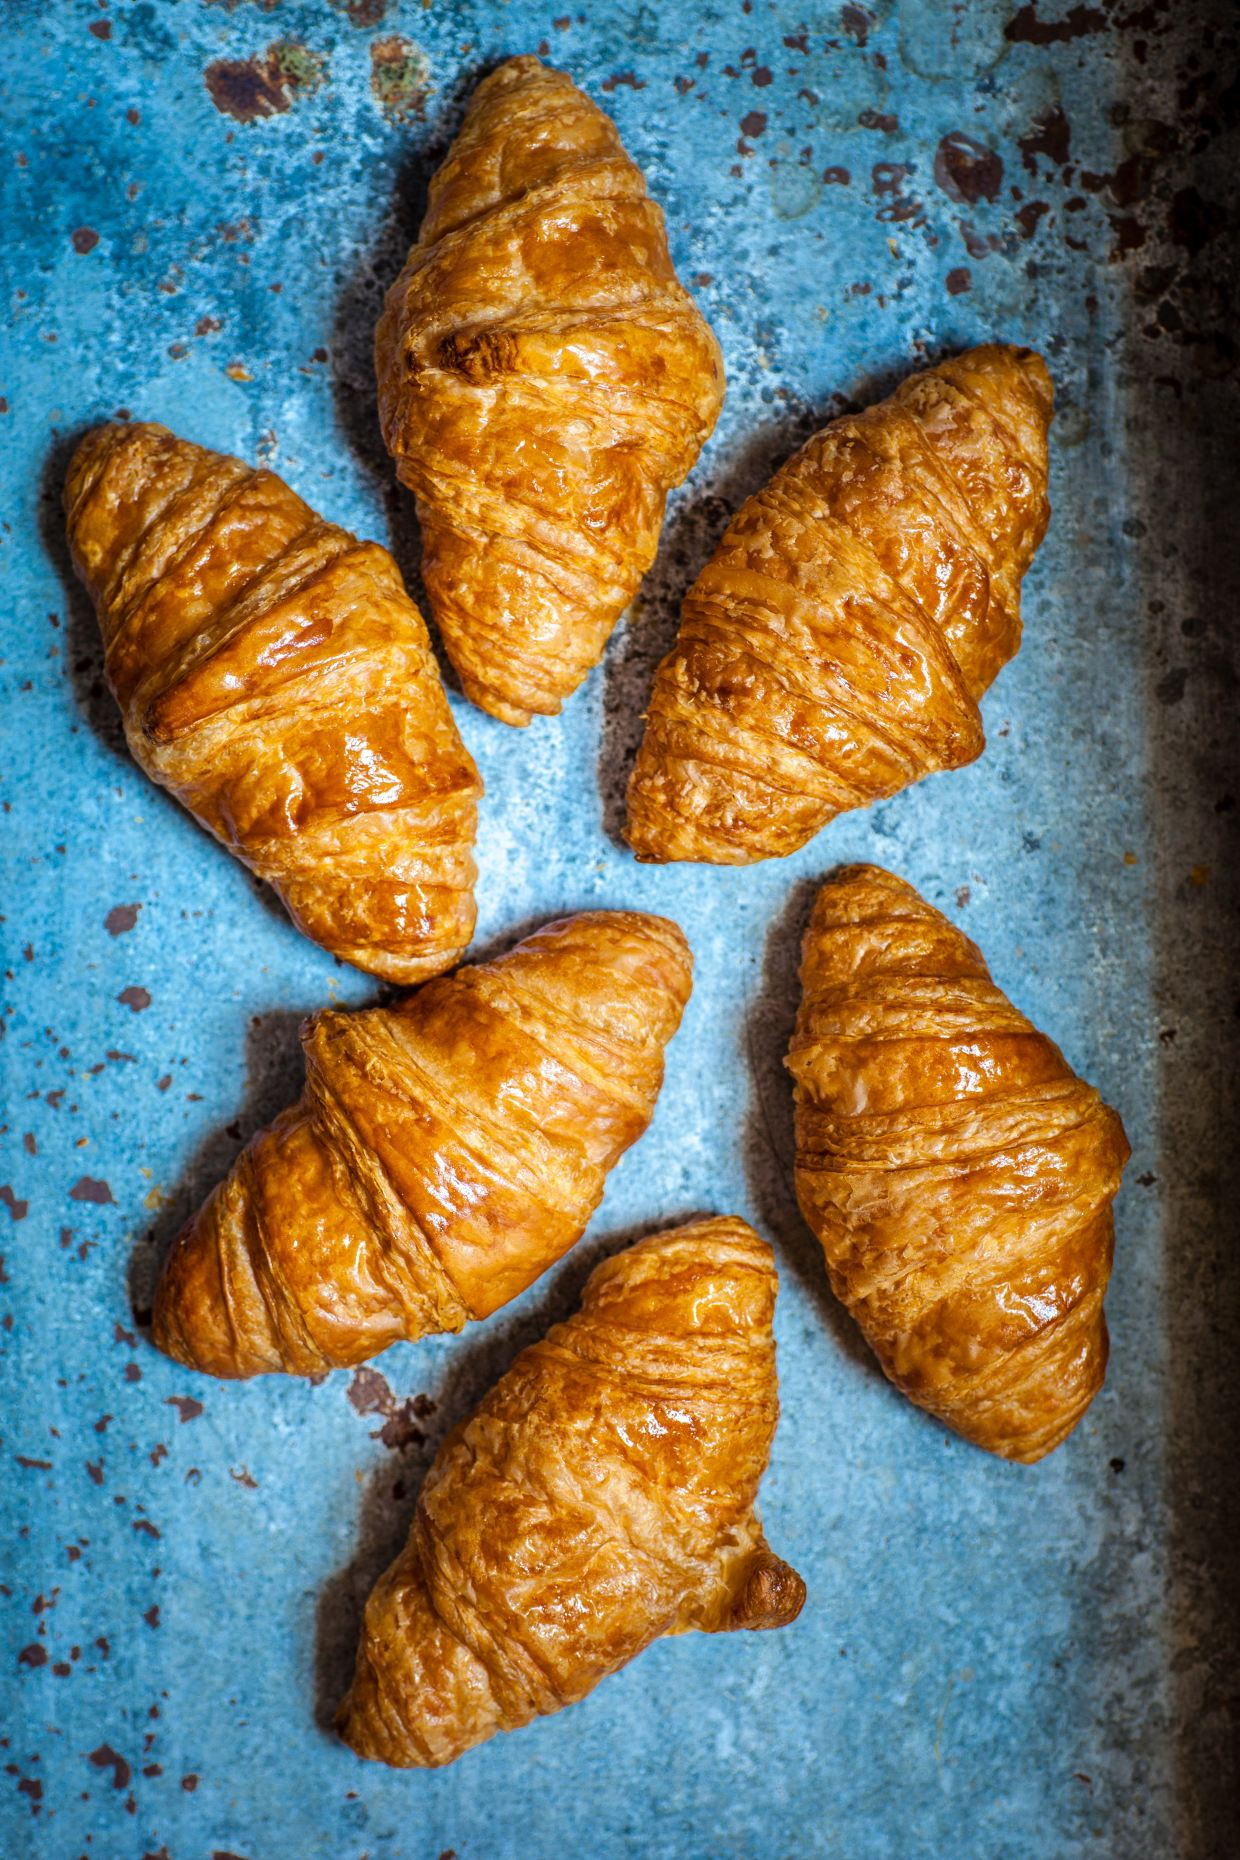 The best croissant in the world is in Castelmola, Sicily.